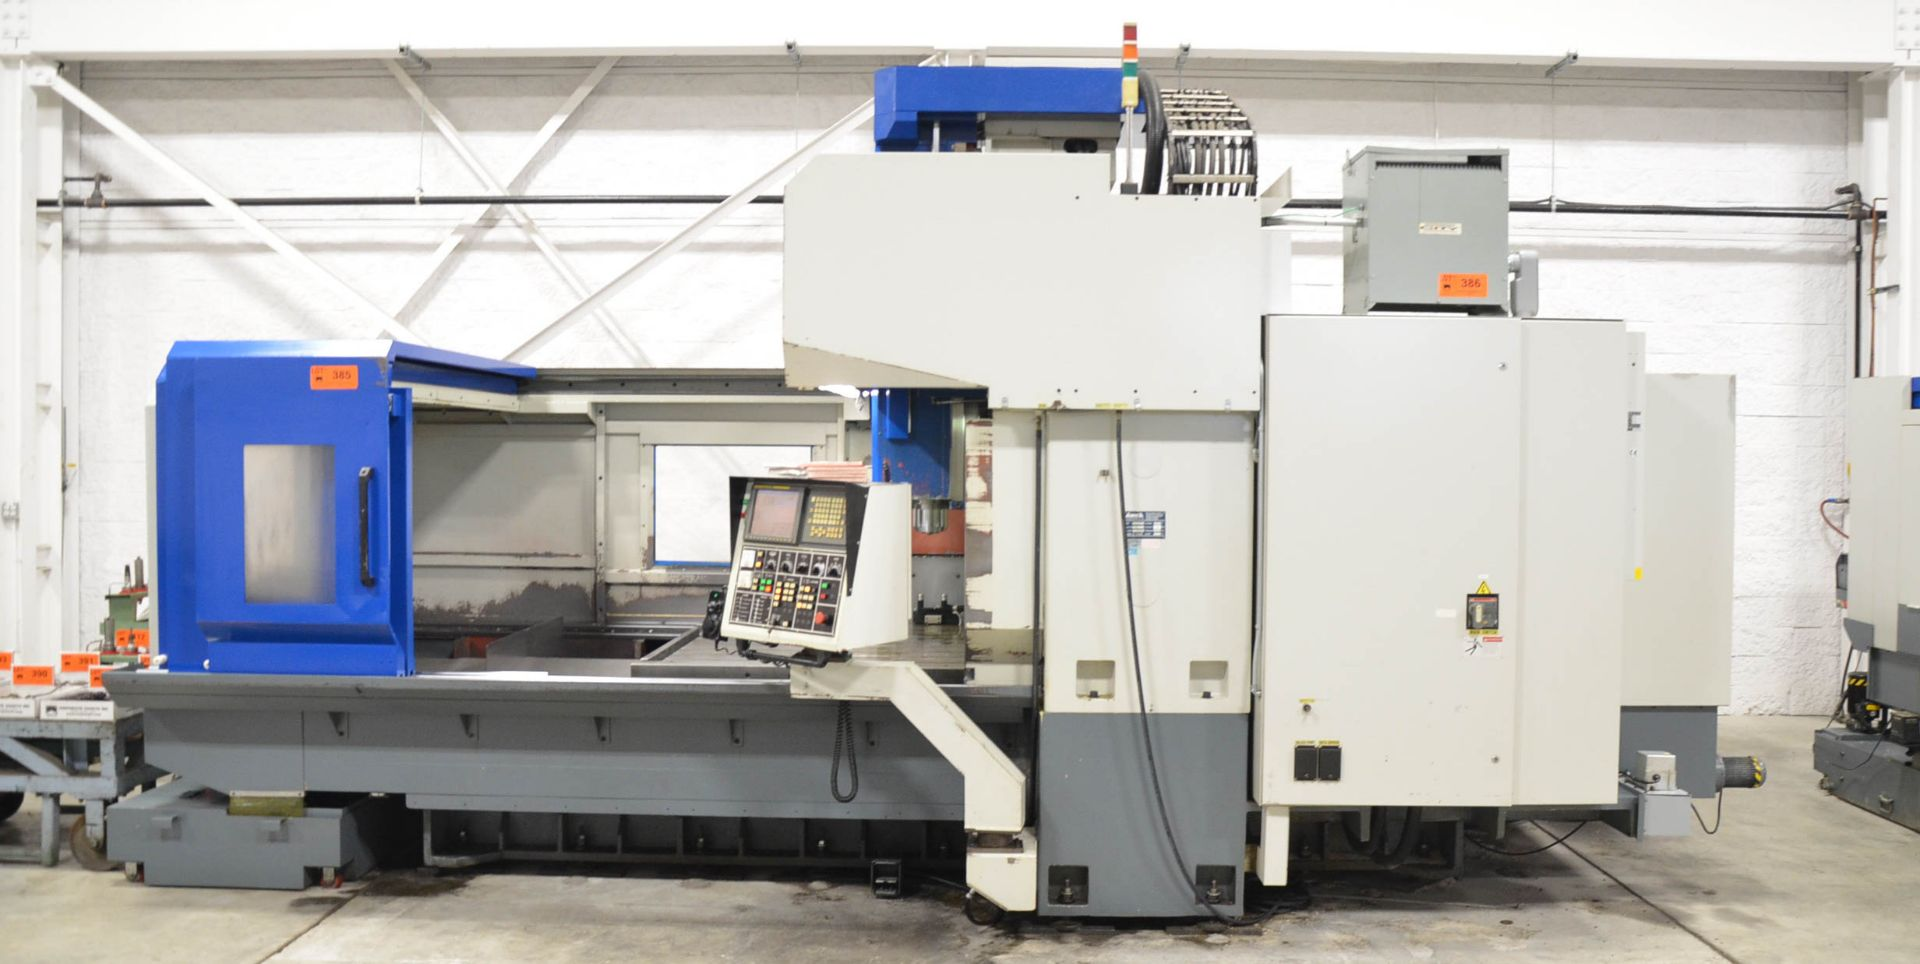 AWEA (2005) SP2016HSS GANTRY-TYPE CNC VERTICAL MACHINING CENTER WITH FANUC SERIES 18I-MB CNC - Image 3 of 11